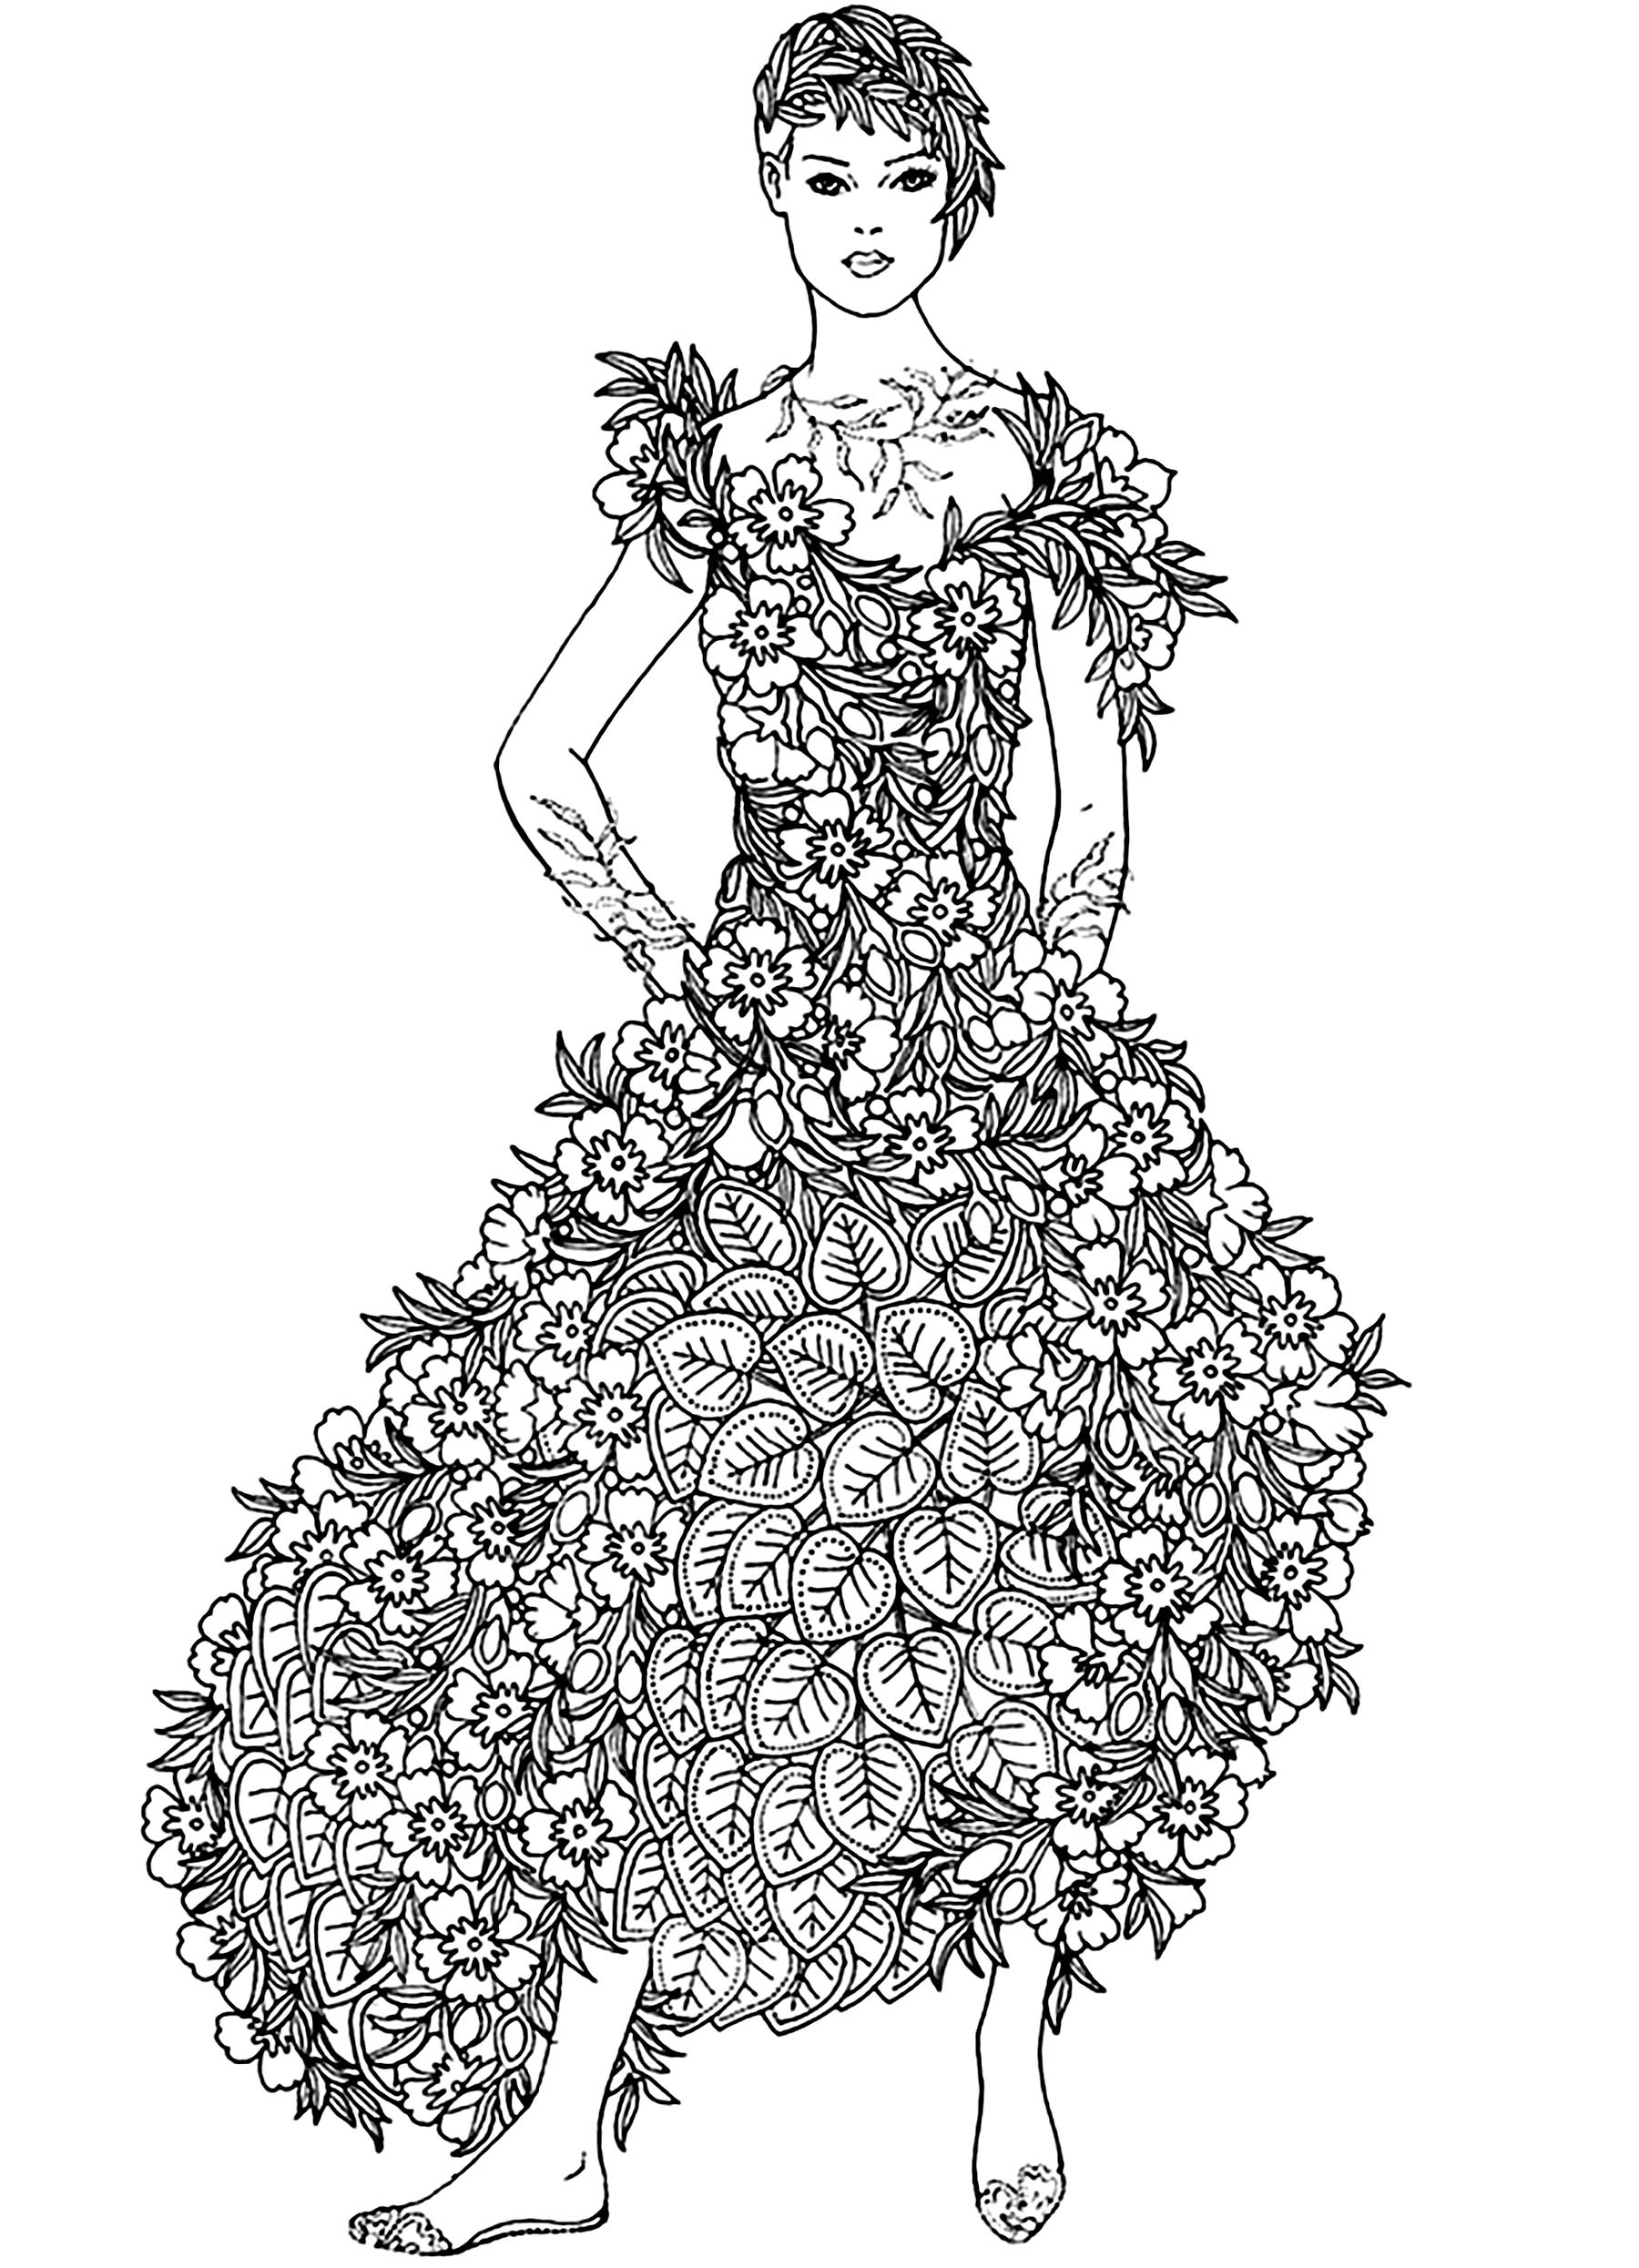 flowers dress flowers and vegetation coloring pages for adults